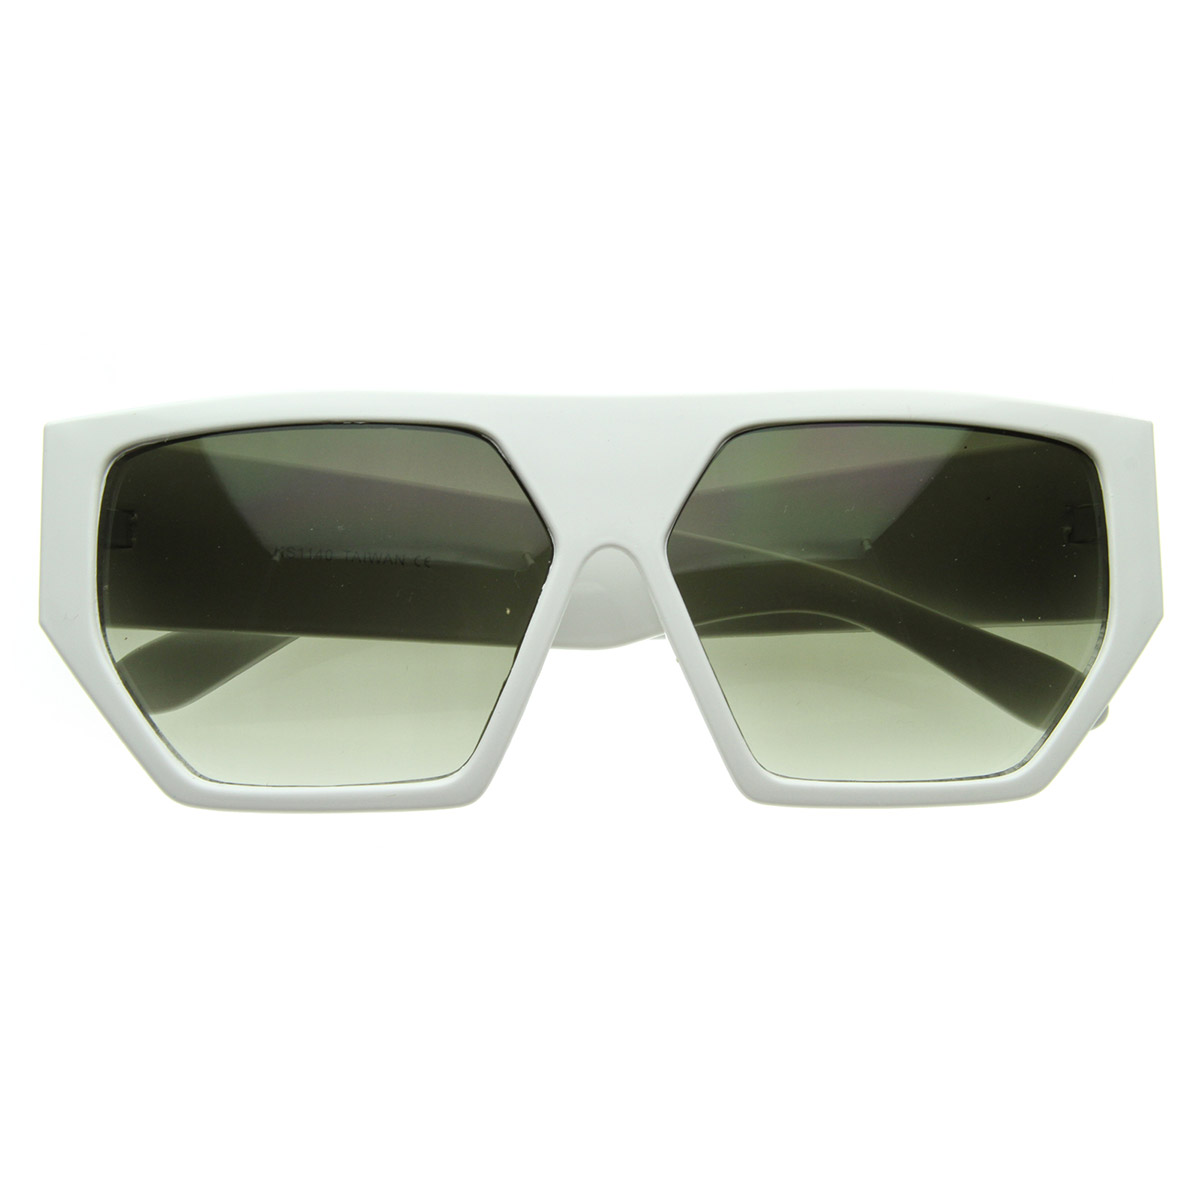 New Geometric Shades Funky Futuristic Flat Top Retro